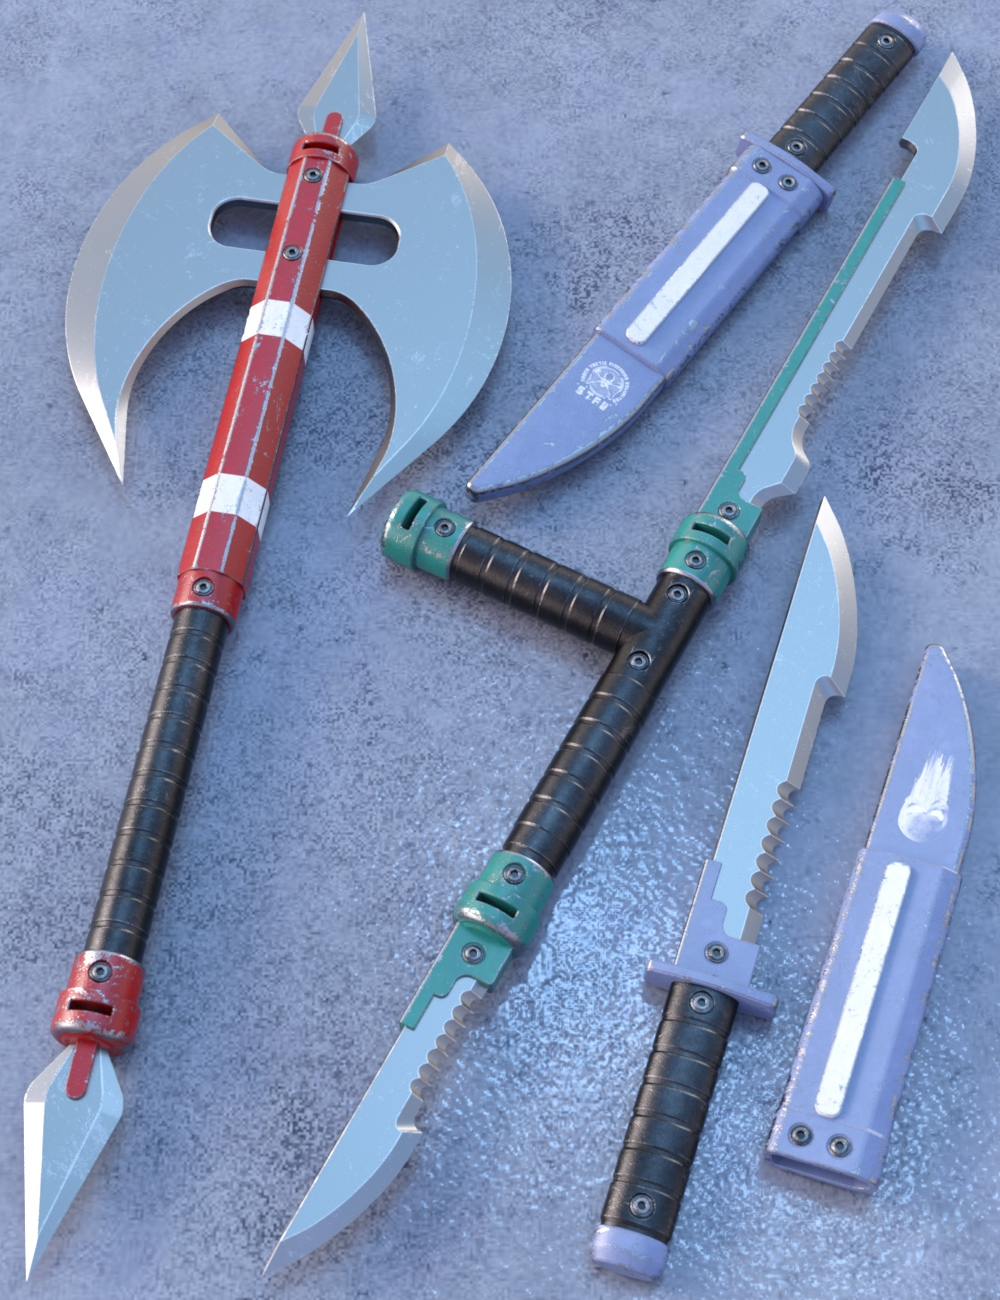 Blade Weapons 3 for Genesis 3 and 8 by: Nightshift3D, 3D Models by Daz 3D